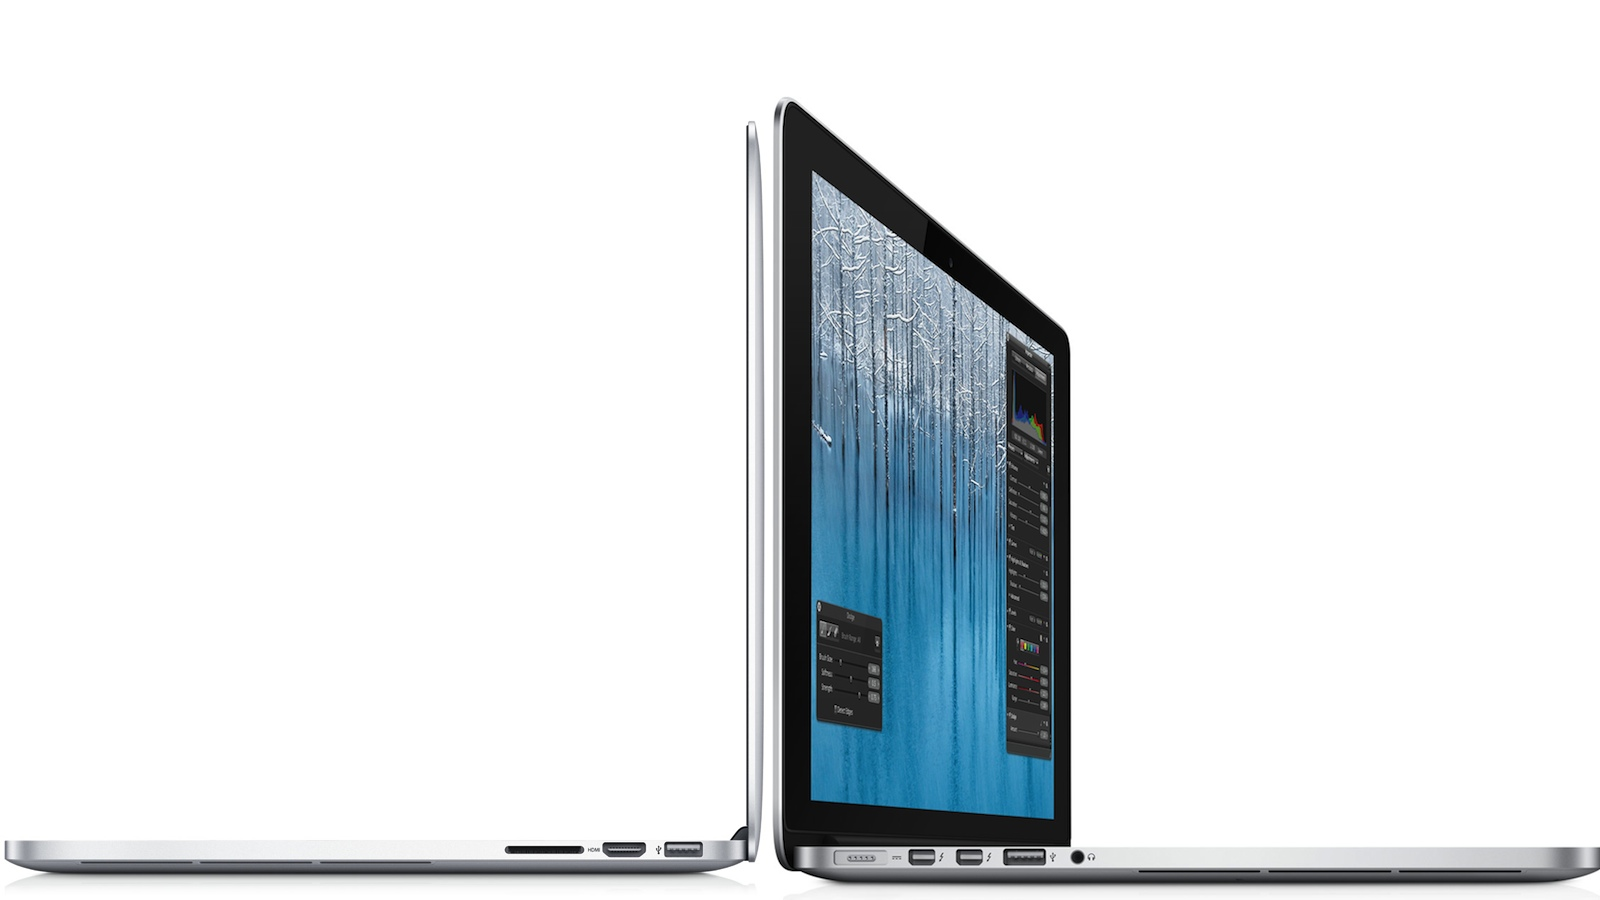 Click here to read The Most Expensive Next-Gen MacBook Pro Costs $3750